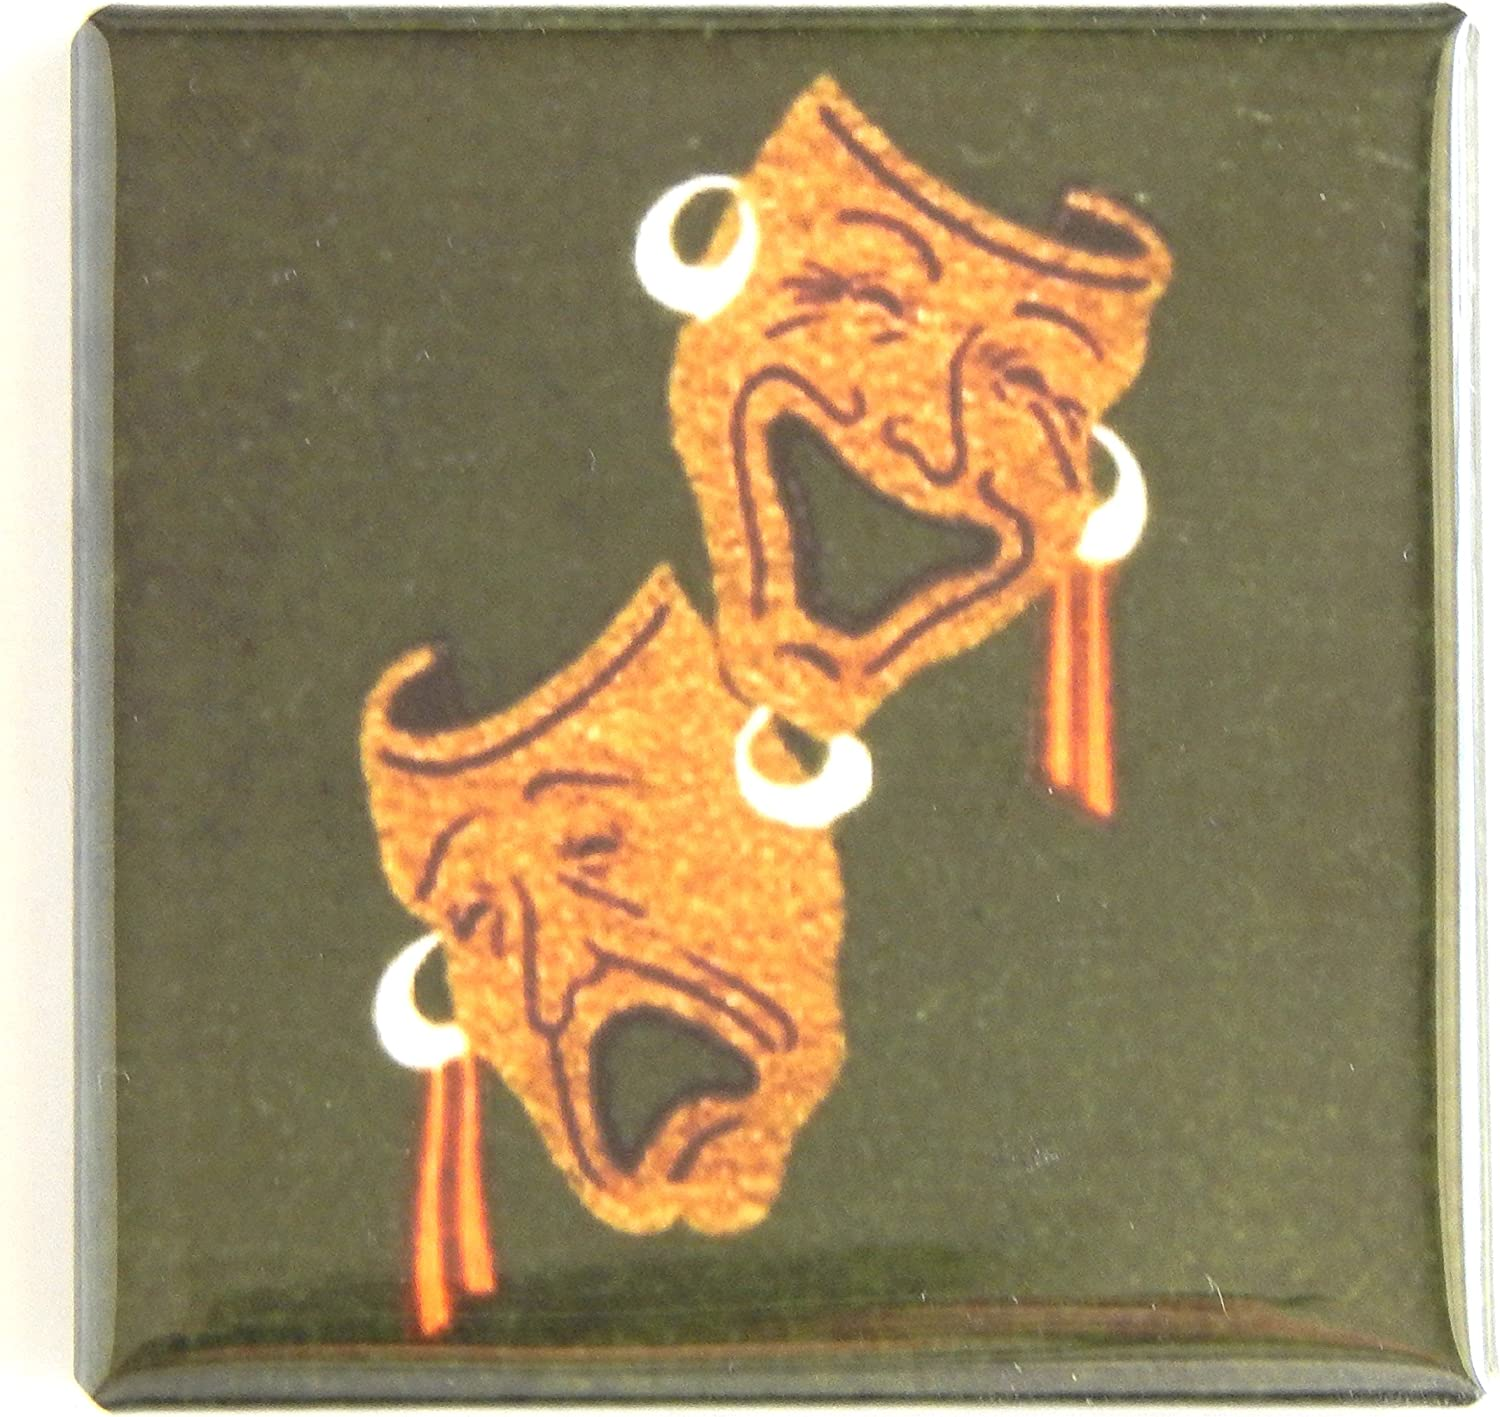 Comedy and Tragedy Masks Fridge Magnet (2 x 2 inches)